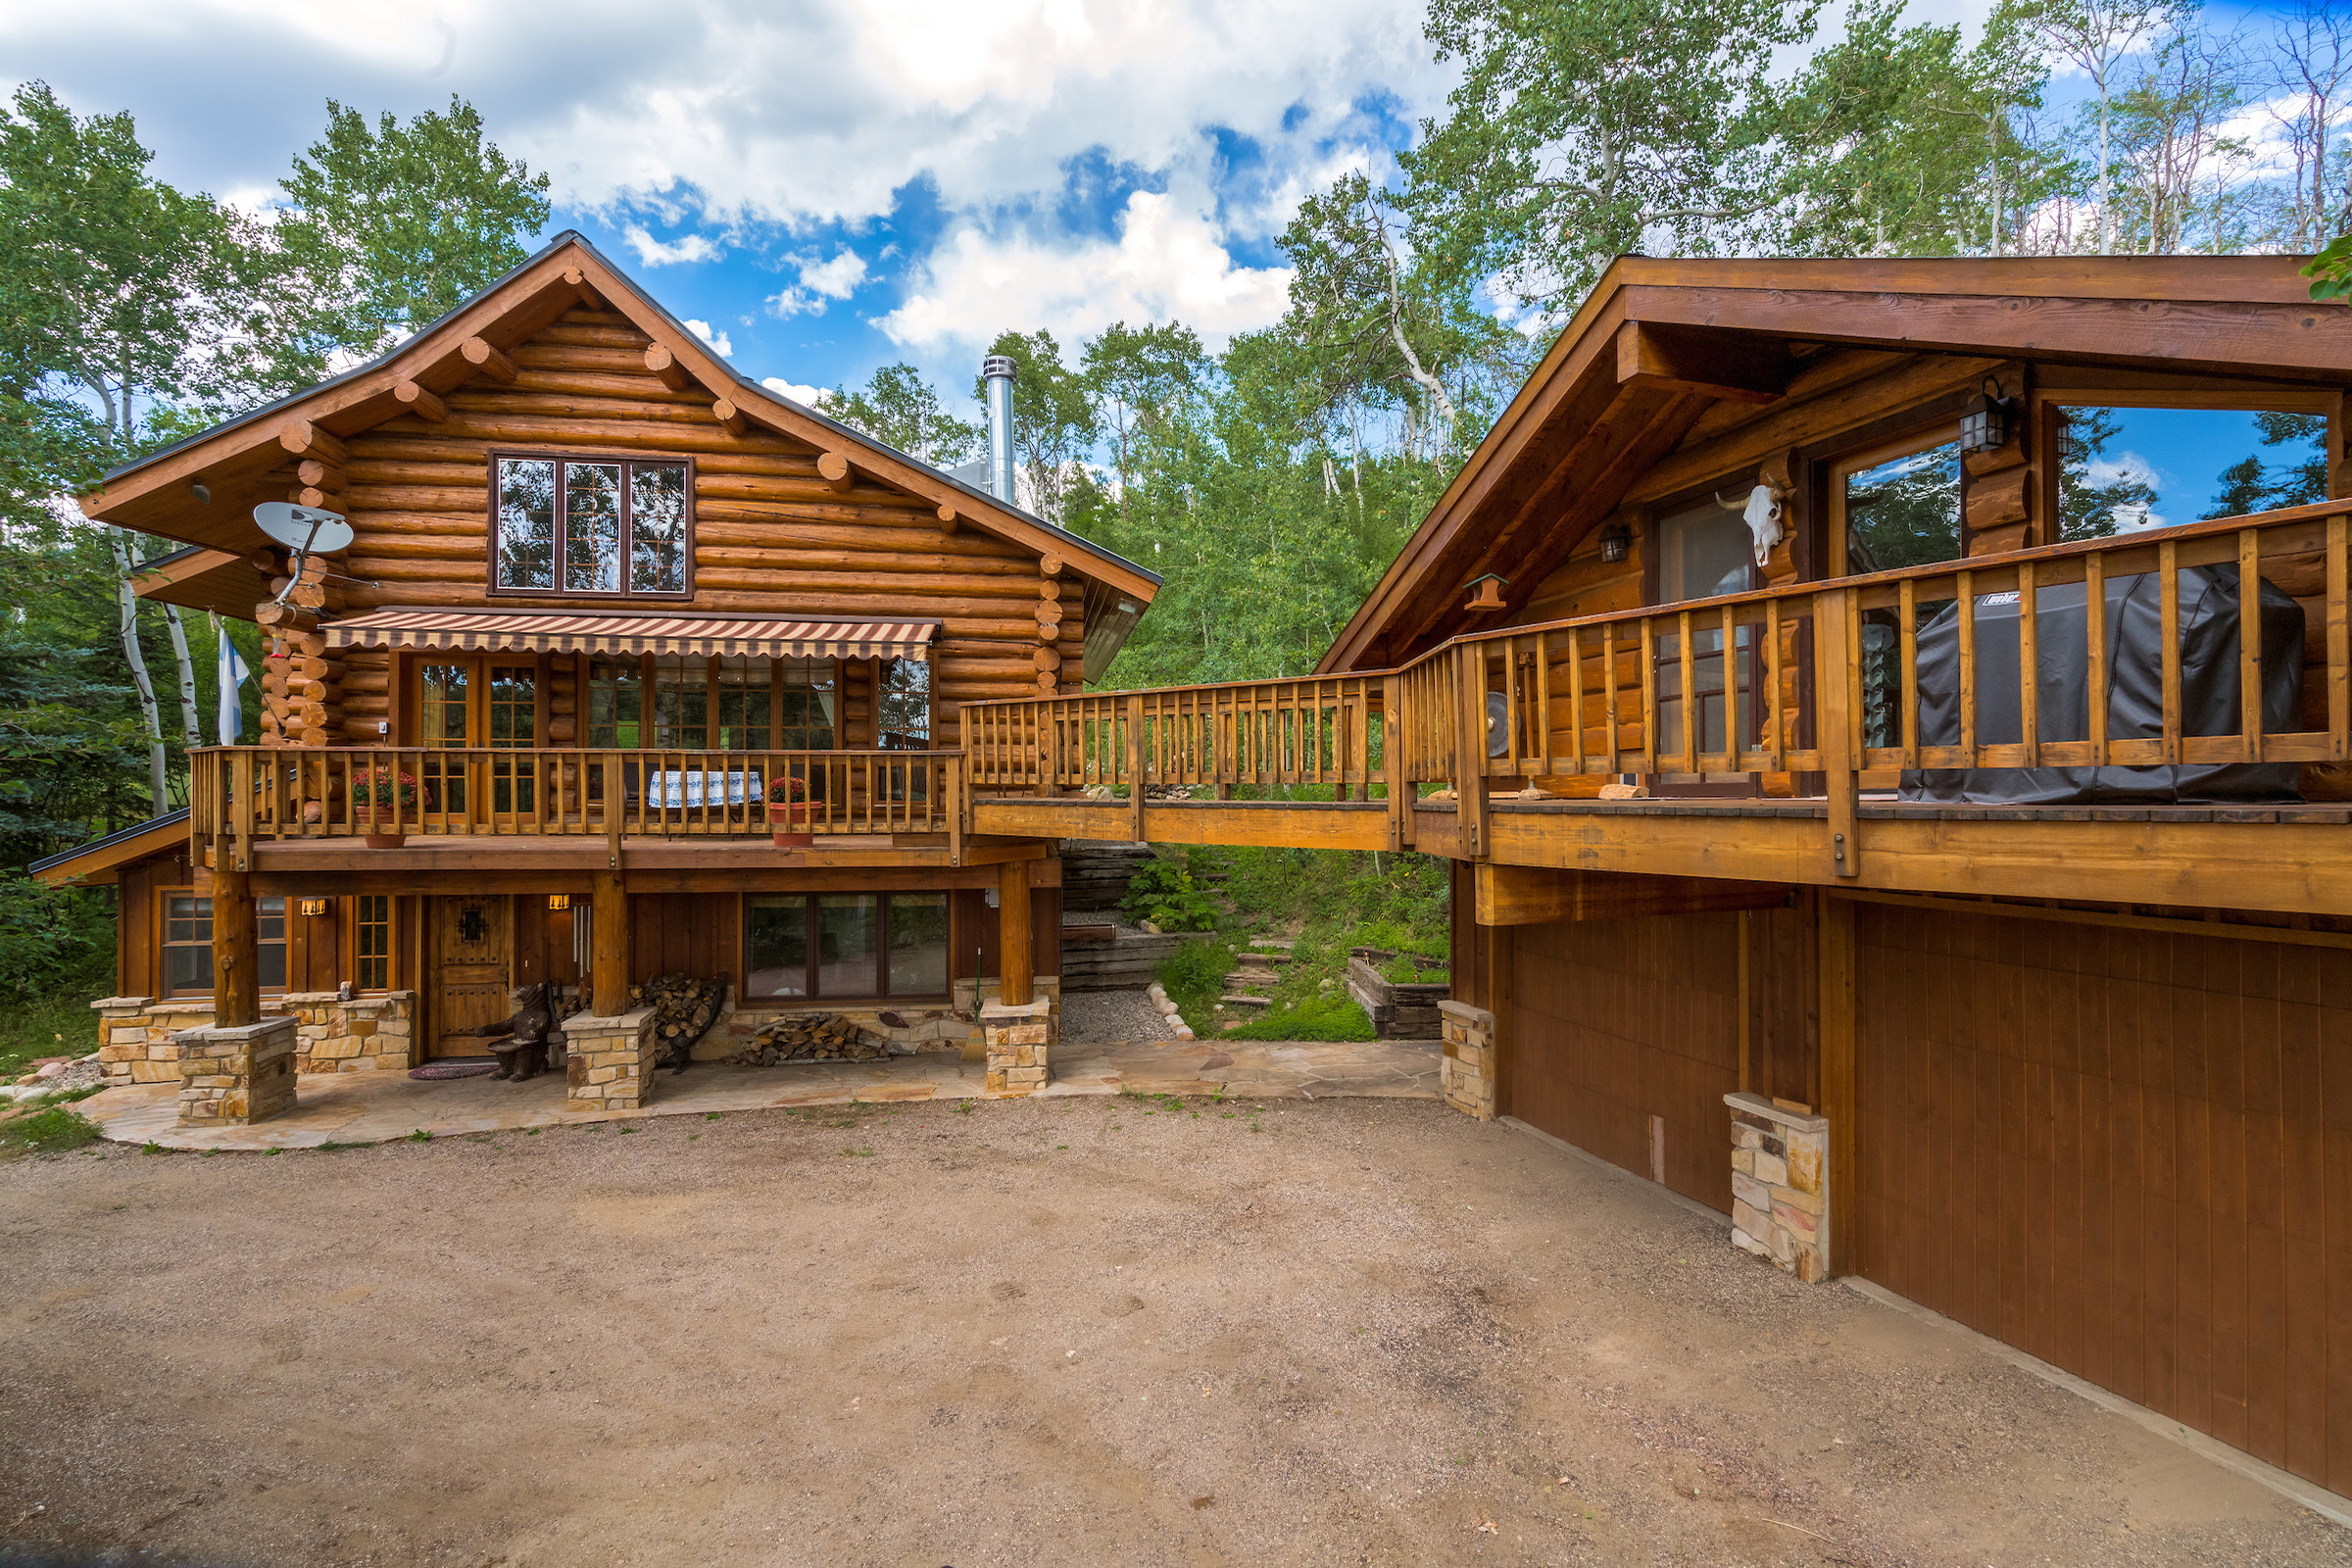 Single Family Home for Sale at Whitewood Log Home 27875 Whitewood Dr E Steamboat Springs, Colorado, 80487 United States